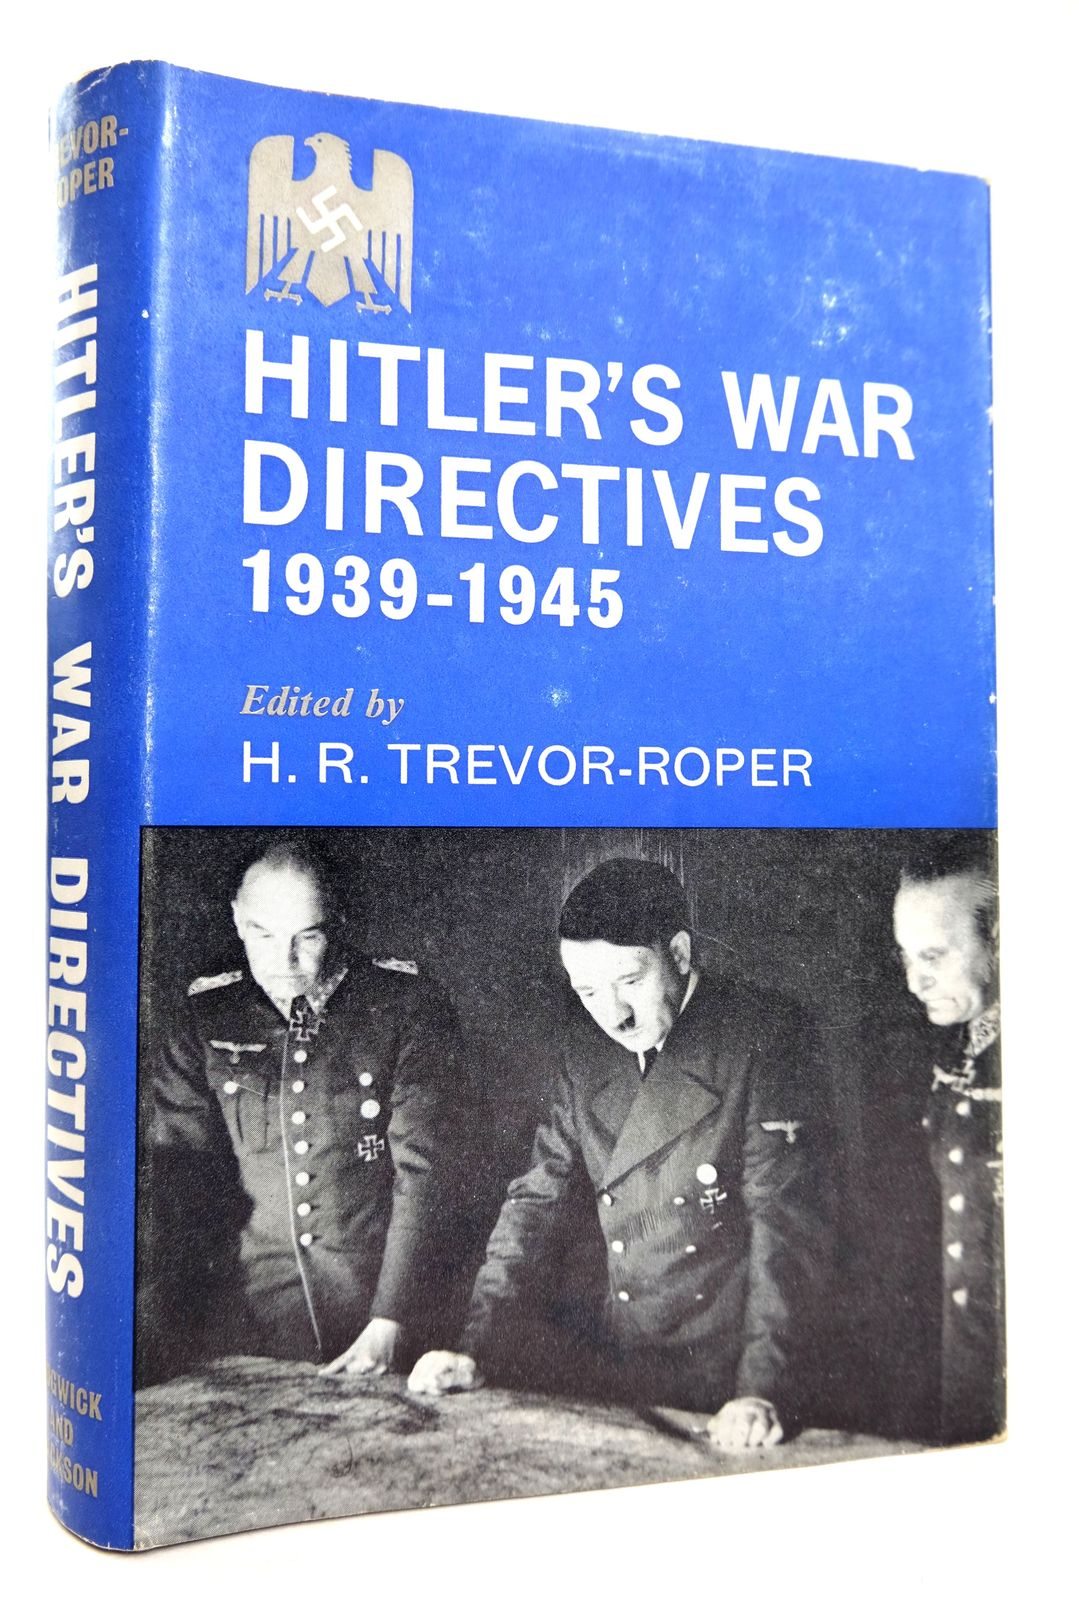 Photo of HITLER'S WAR DIRECTIVES 1939-1945 written by Trevor-Roper, H.R. published by Sidgwick & Jackson (STOCK CODE: 1818892)  for sale by Stella & Rose's Books